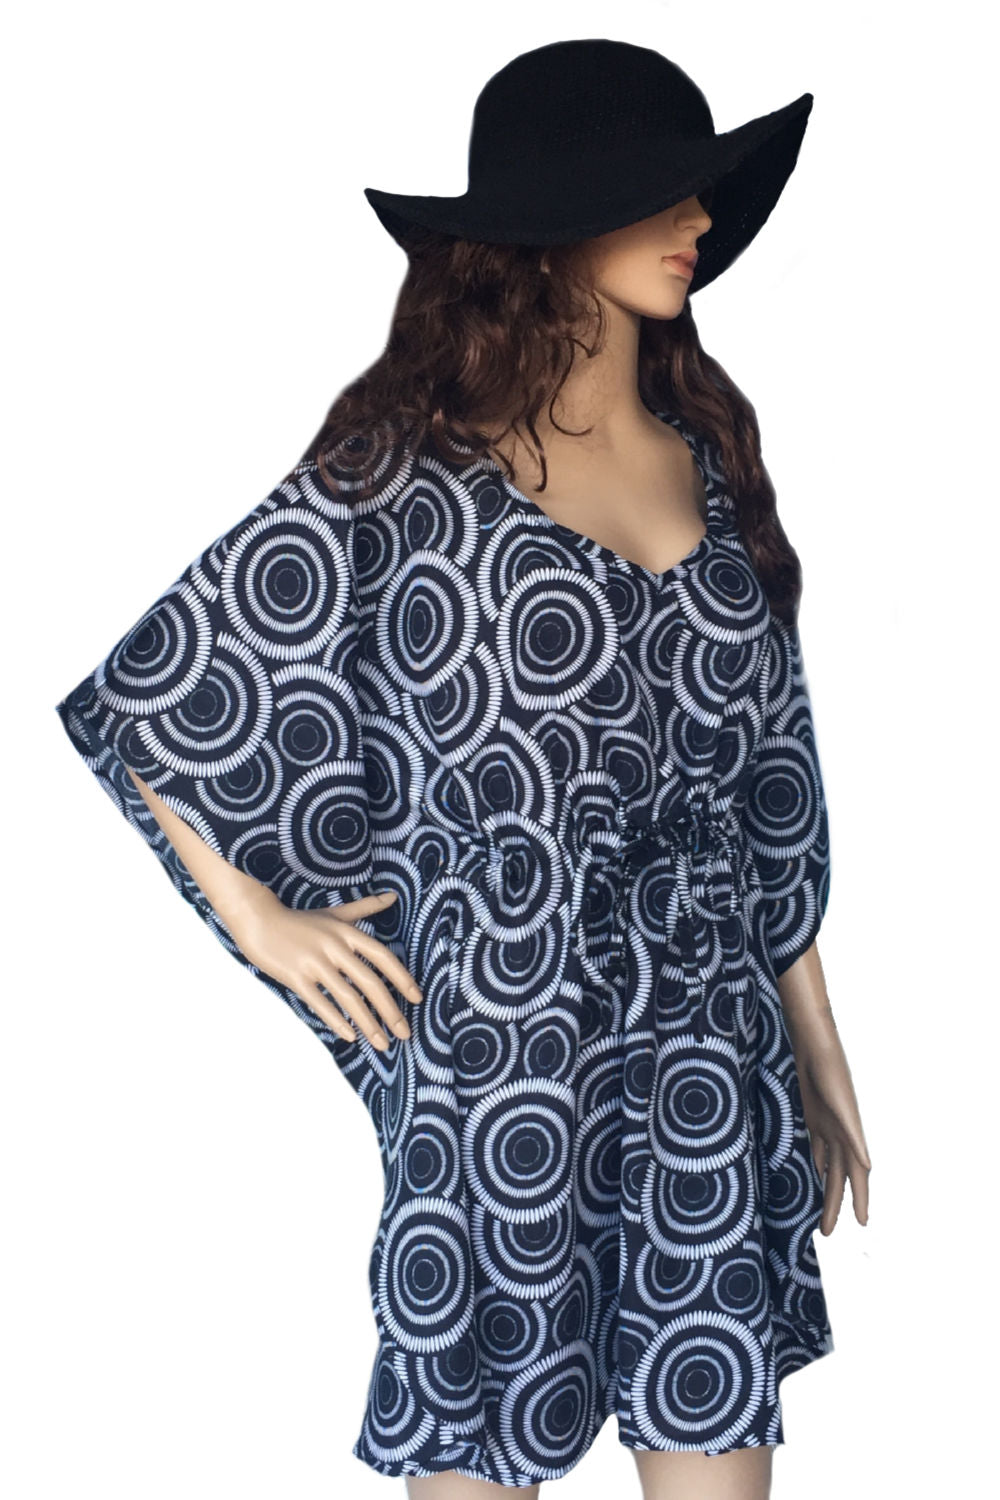 short-kaftan-dress-black-white-circle-design